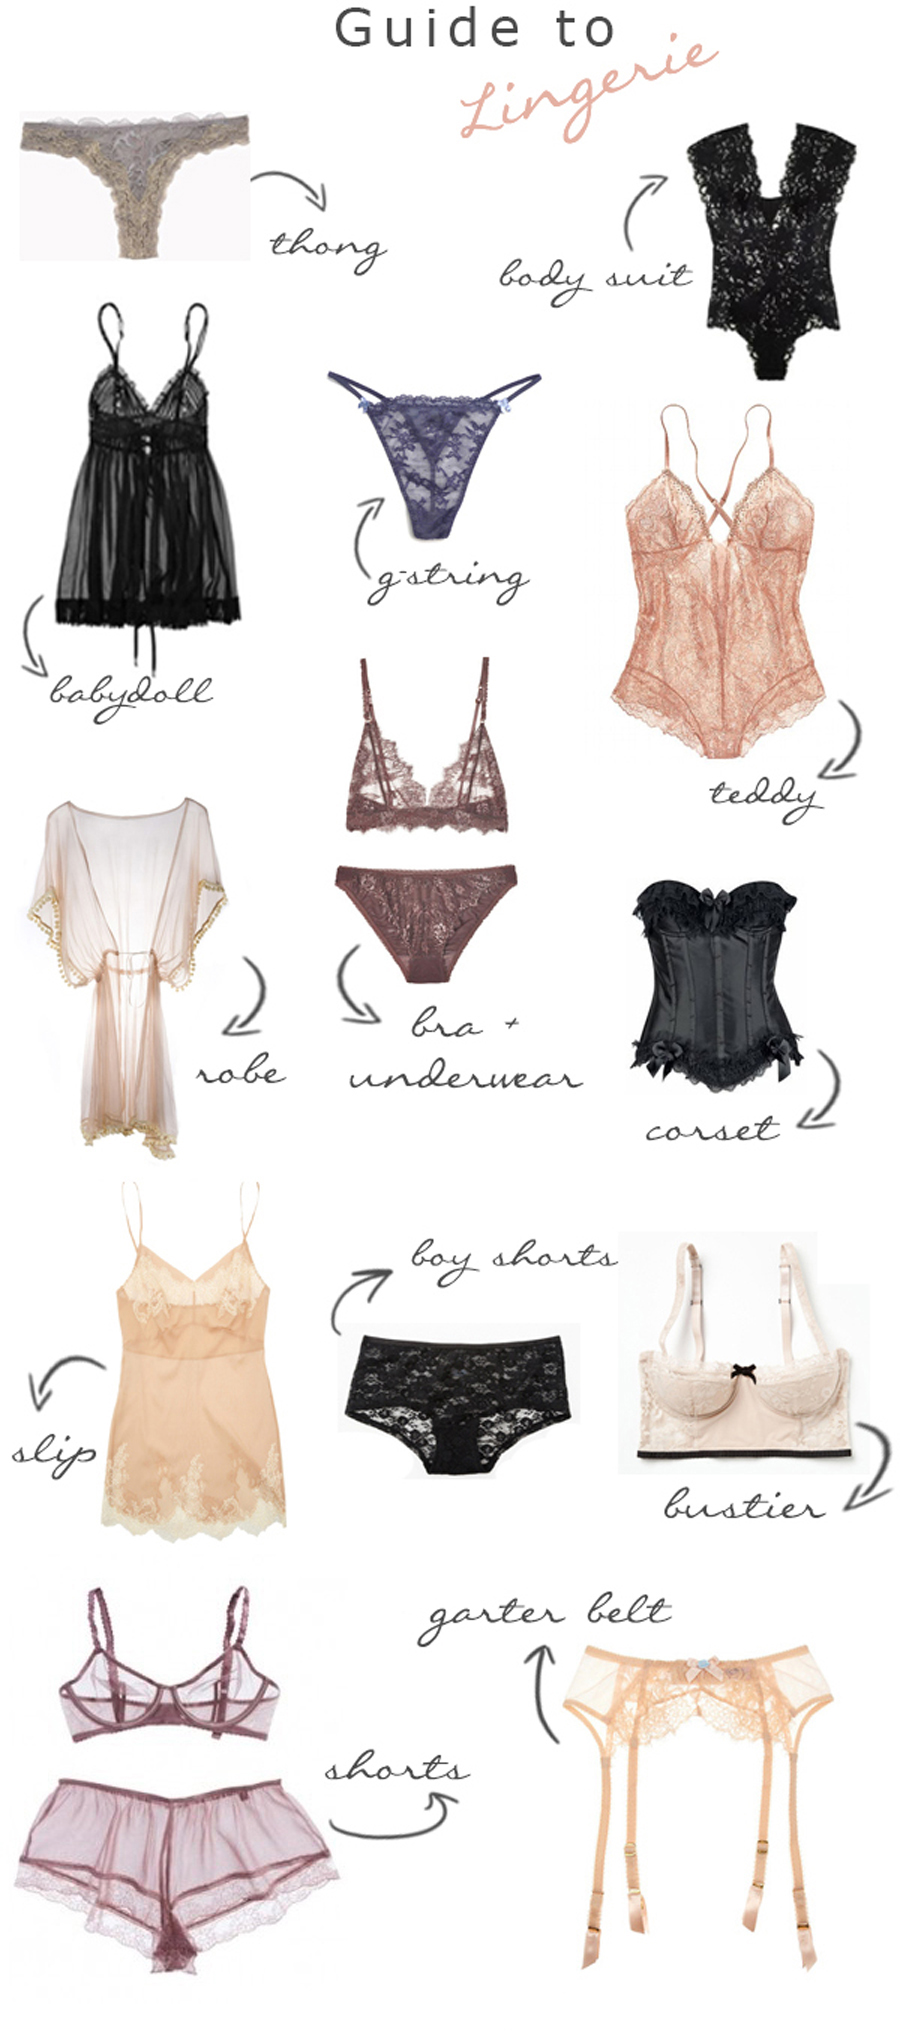 Guide to lingerie